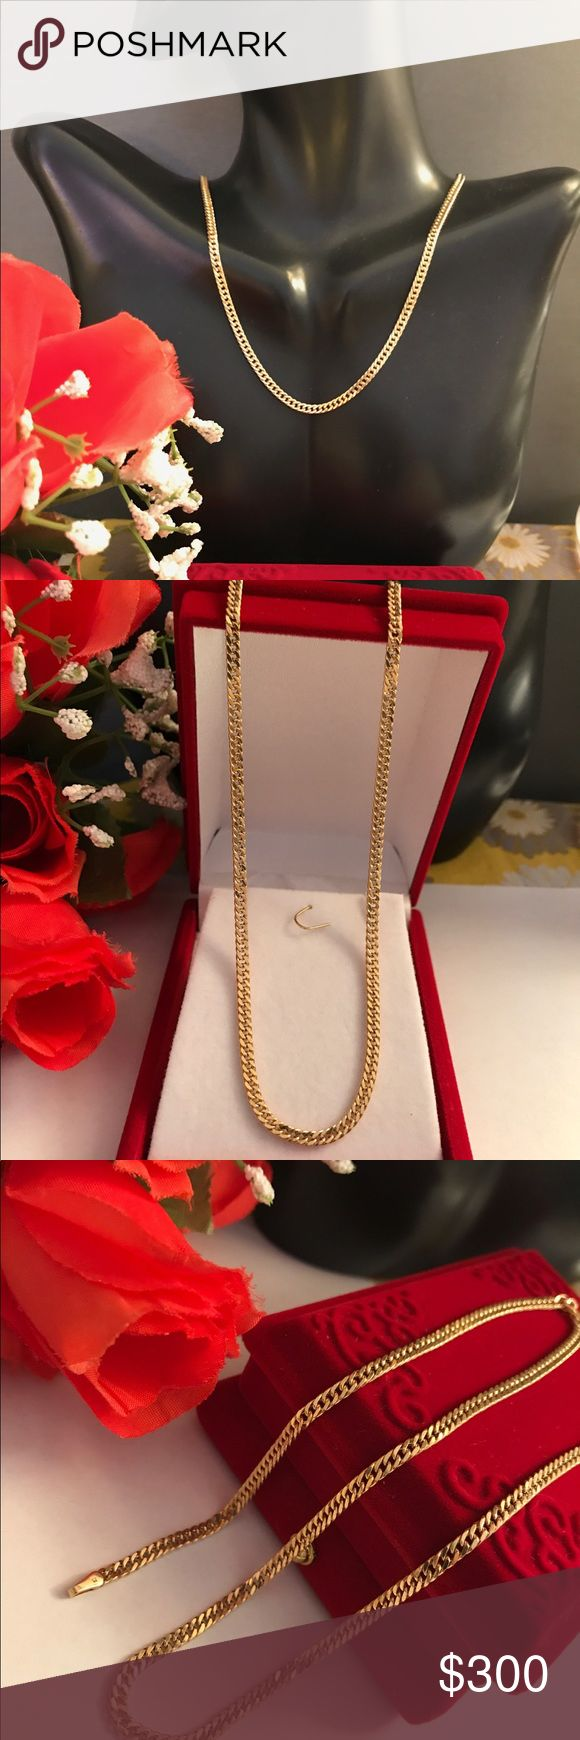 18k Real Saudi Gold chain Made of 100% 18K Real Gold.  * 750 Stamped *3.8 grams *16 inches long  #RealGold * Not Plated! * Not filled!  * If you have any questions please do not hesitate to ask before buying to avoid return.  * If you have doubt please don't buy! * all Jewelries are 100% Tested! stamped Other